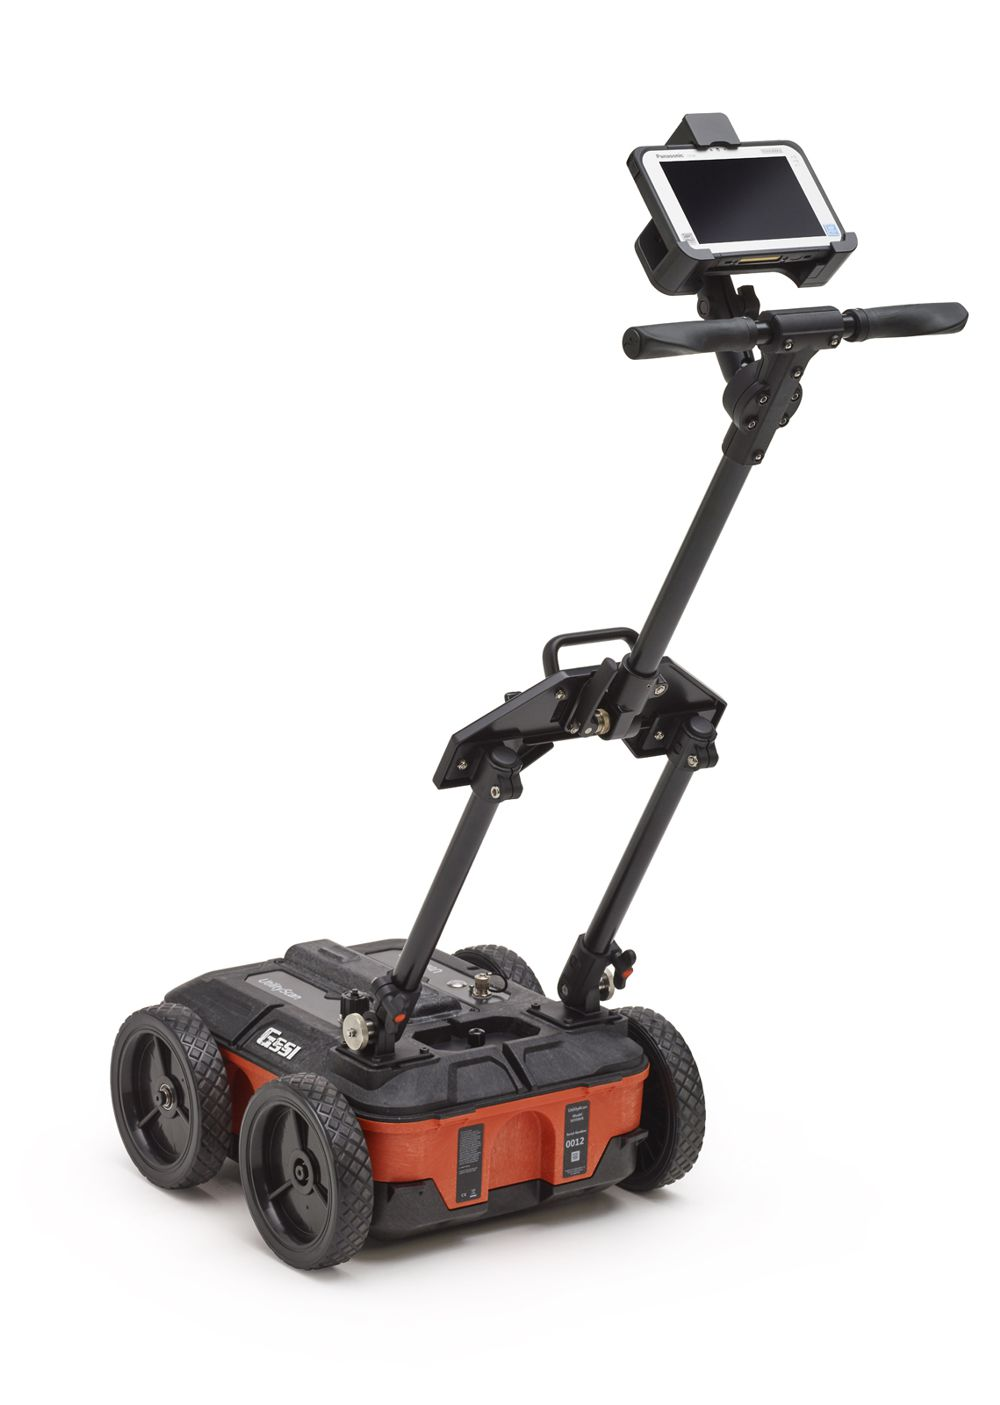 GSSI showcases their latest GPR technology at World of Concrete 2018